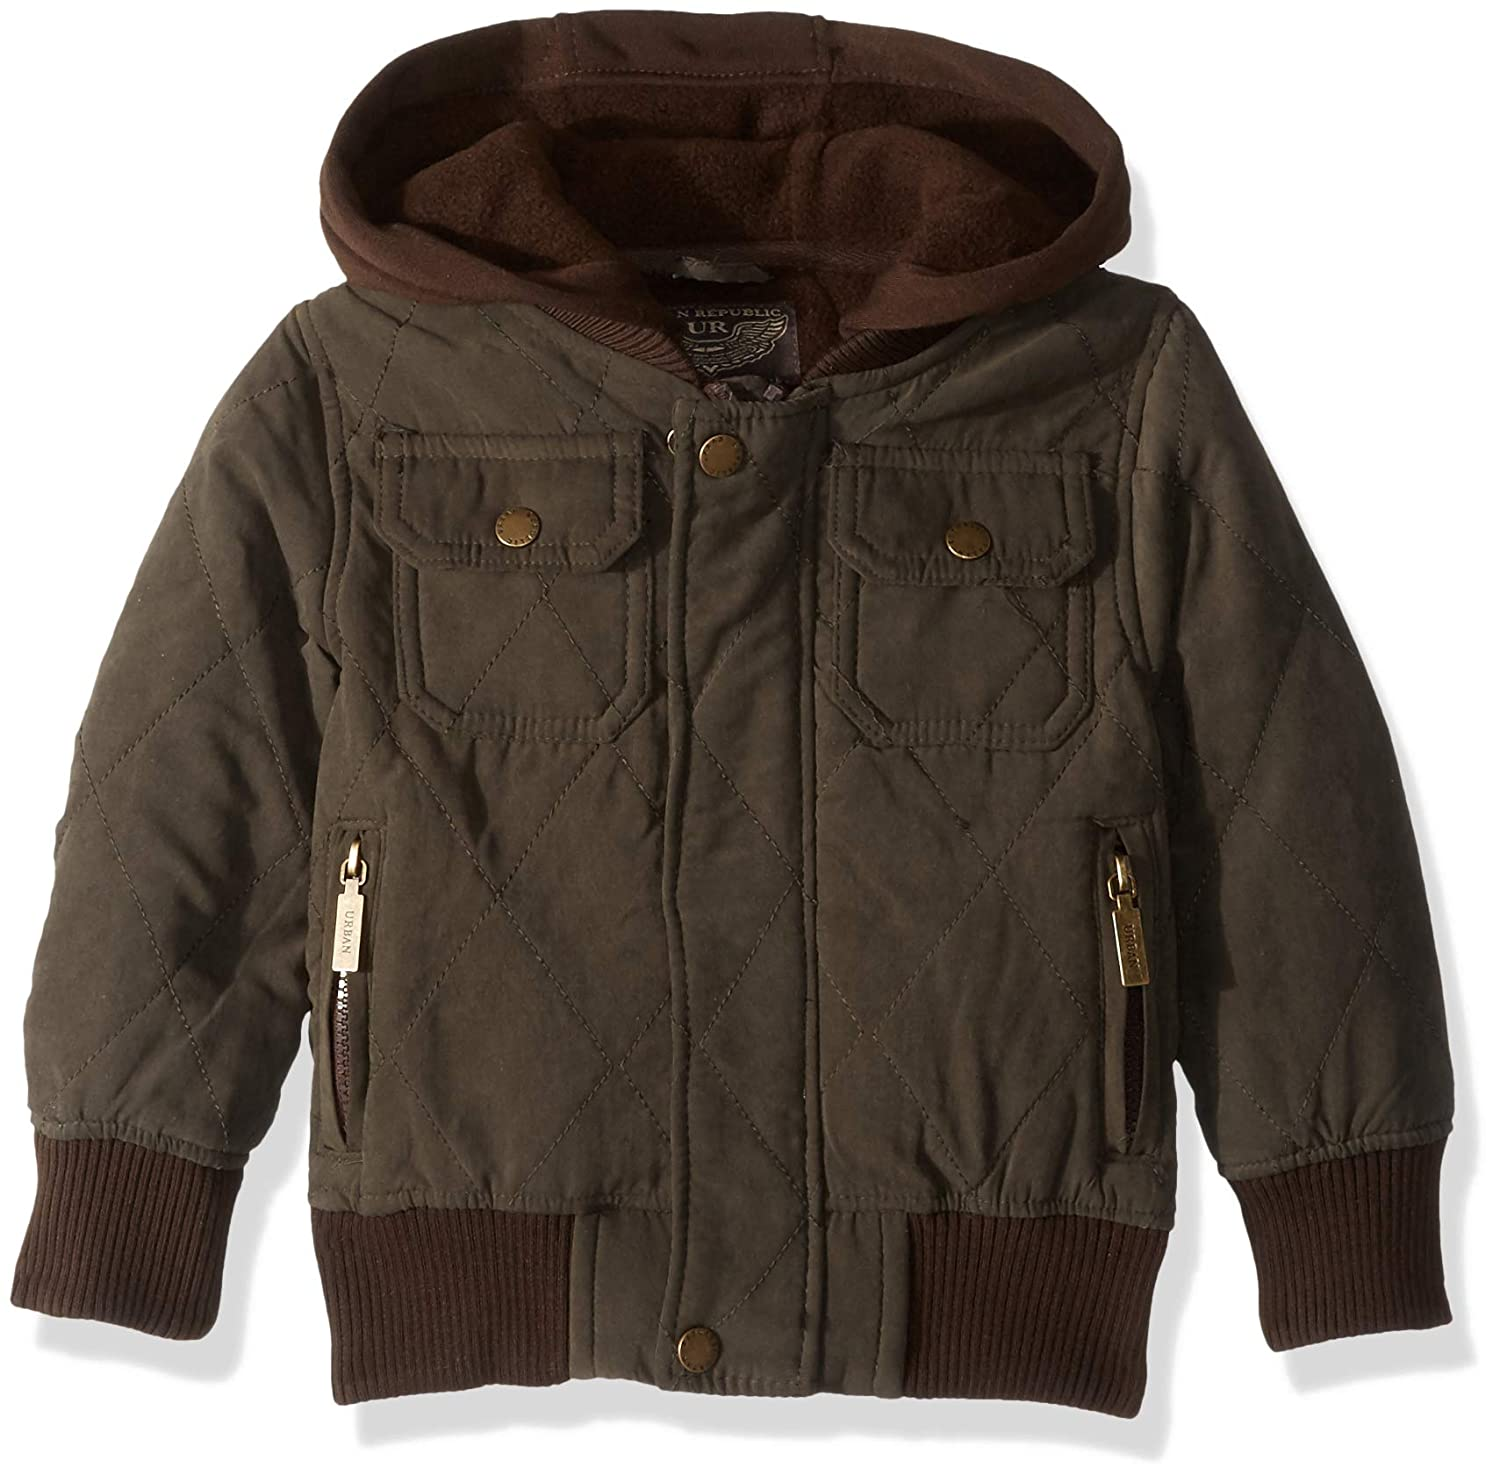 Urban Republic Boys Microfiber Quilted Polar Fleece JKT